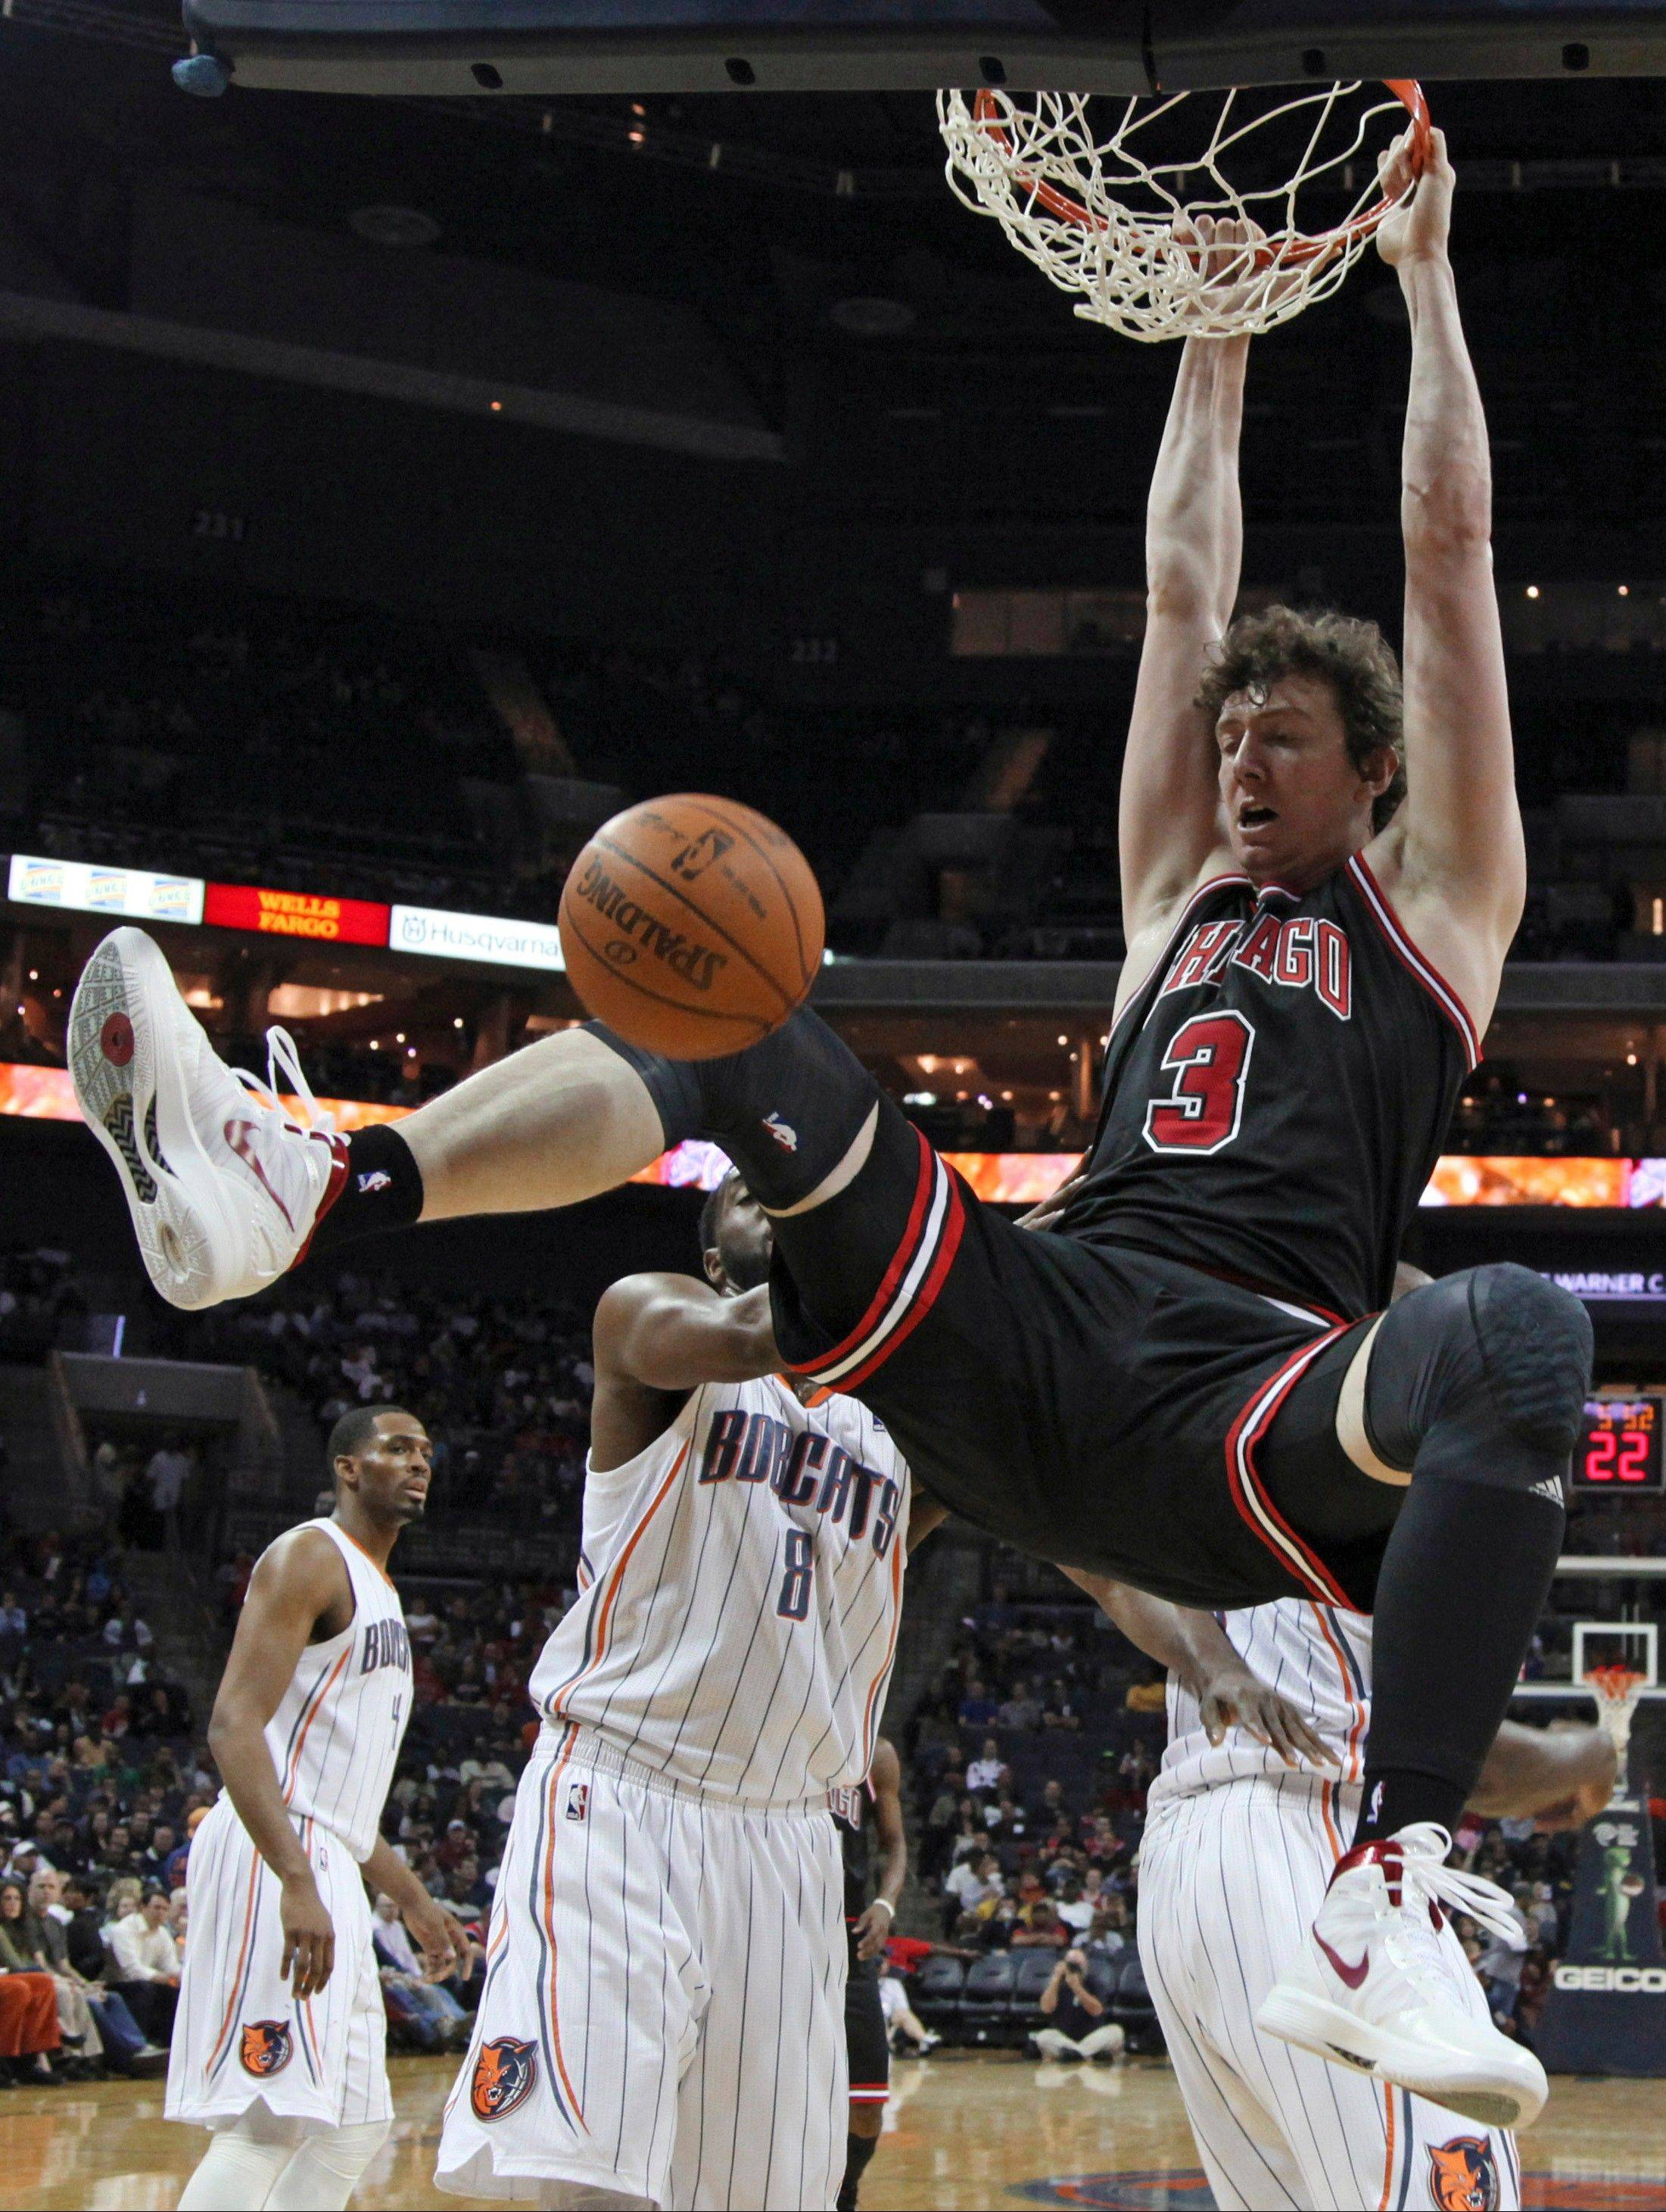 Omer Asik (3) dunks in front of Charlotte Bobcats' D.J. White (8) during the first half of an NBA basketball game in Charlotte, N.C., Wednesday, April 18, 2012. (AP Photo/Chuck Burton)